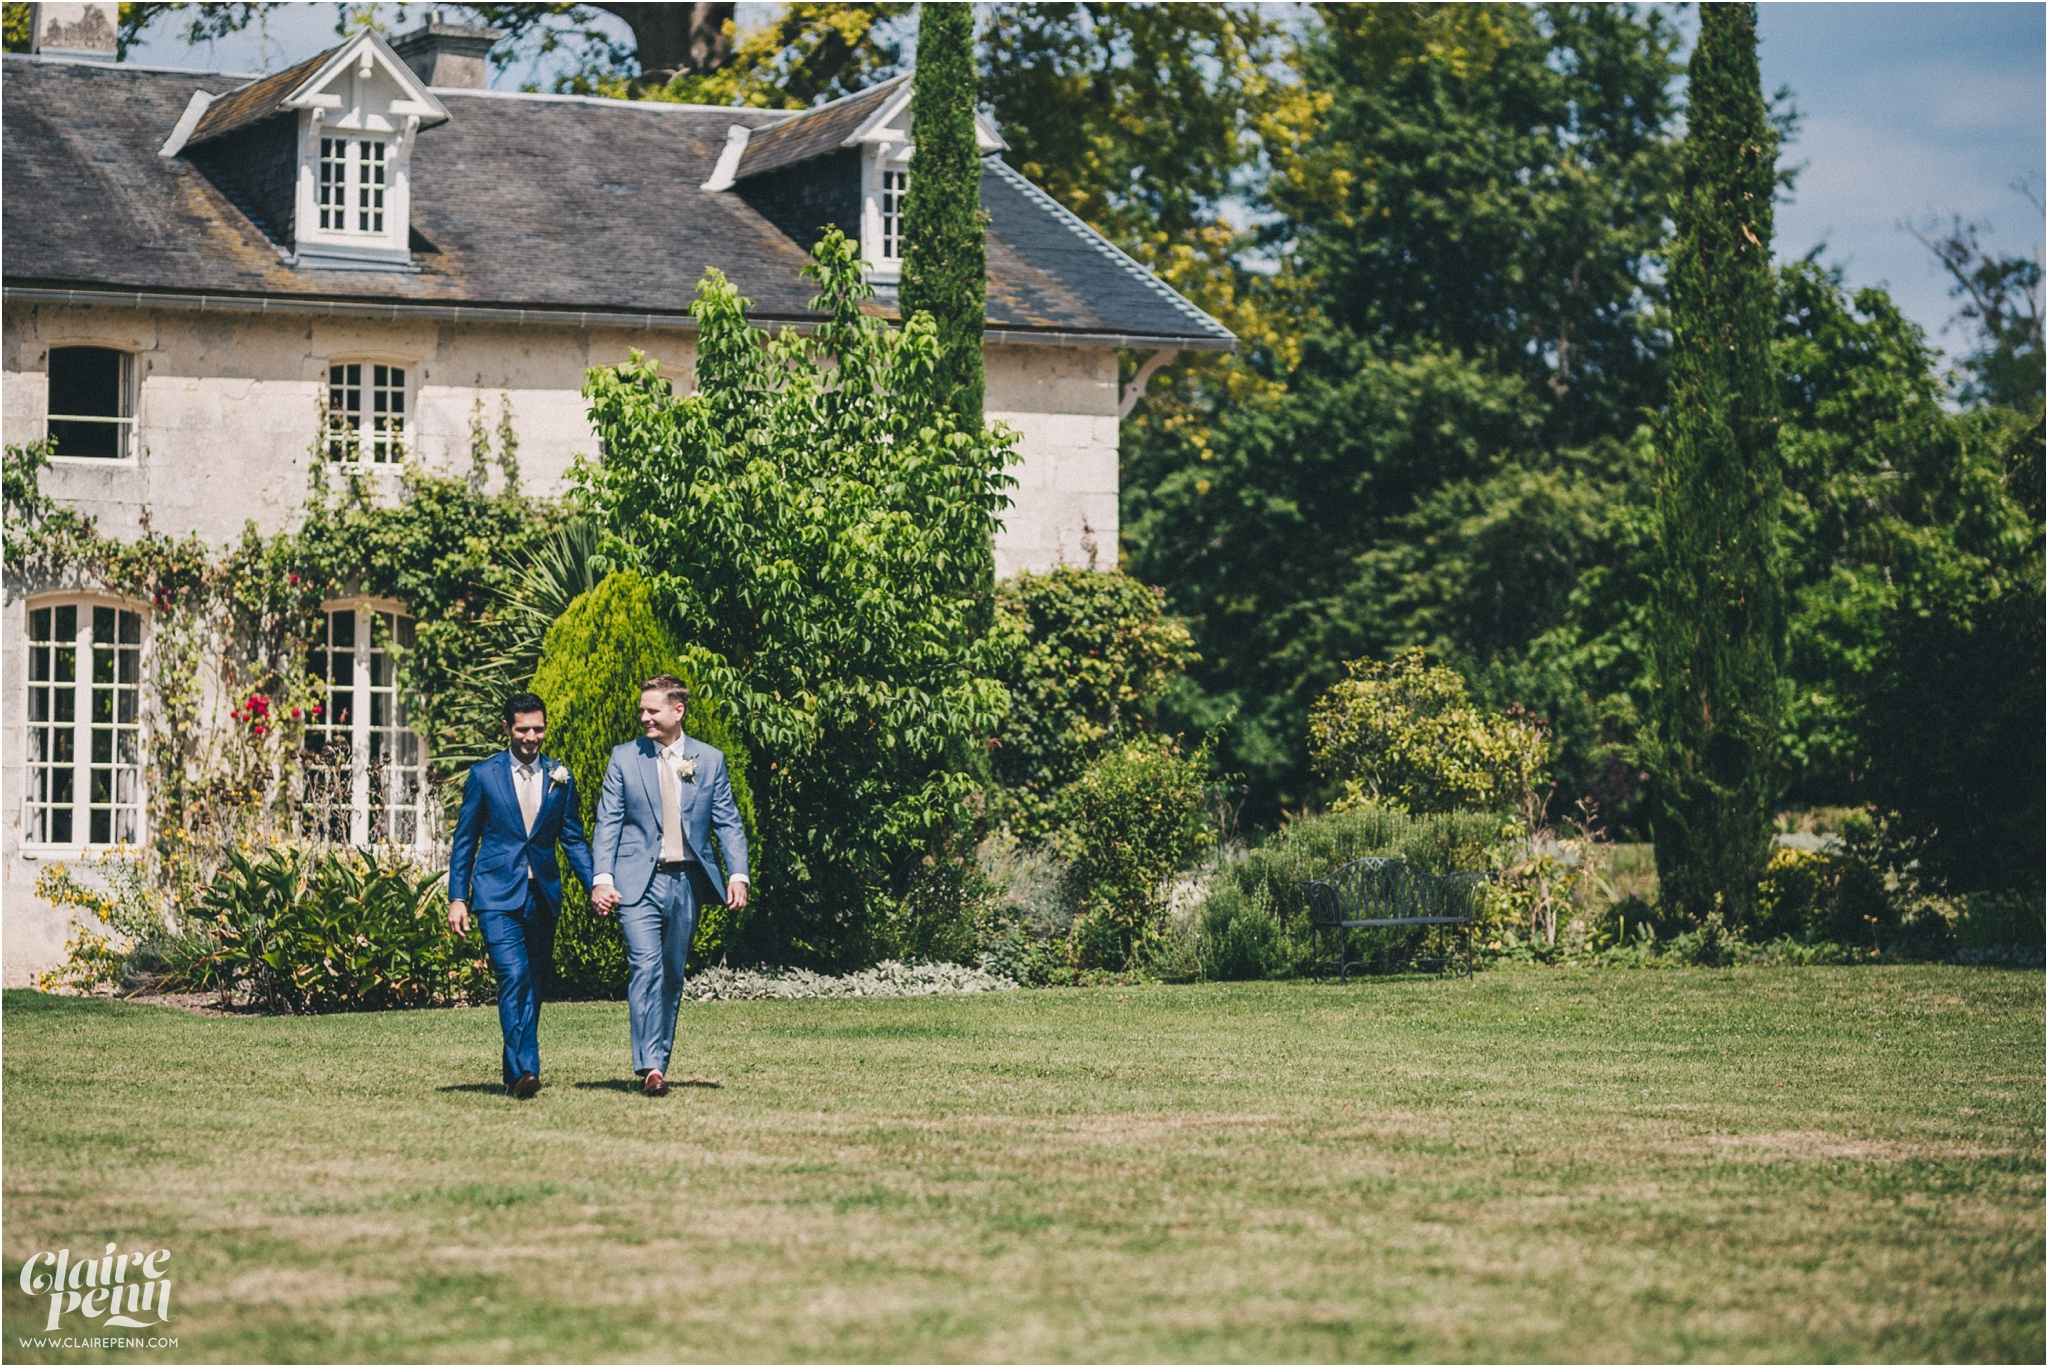 Le Chateau Charmant wedding Dordogne France_0023.jpg